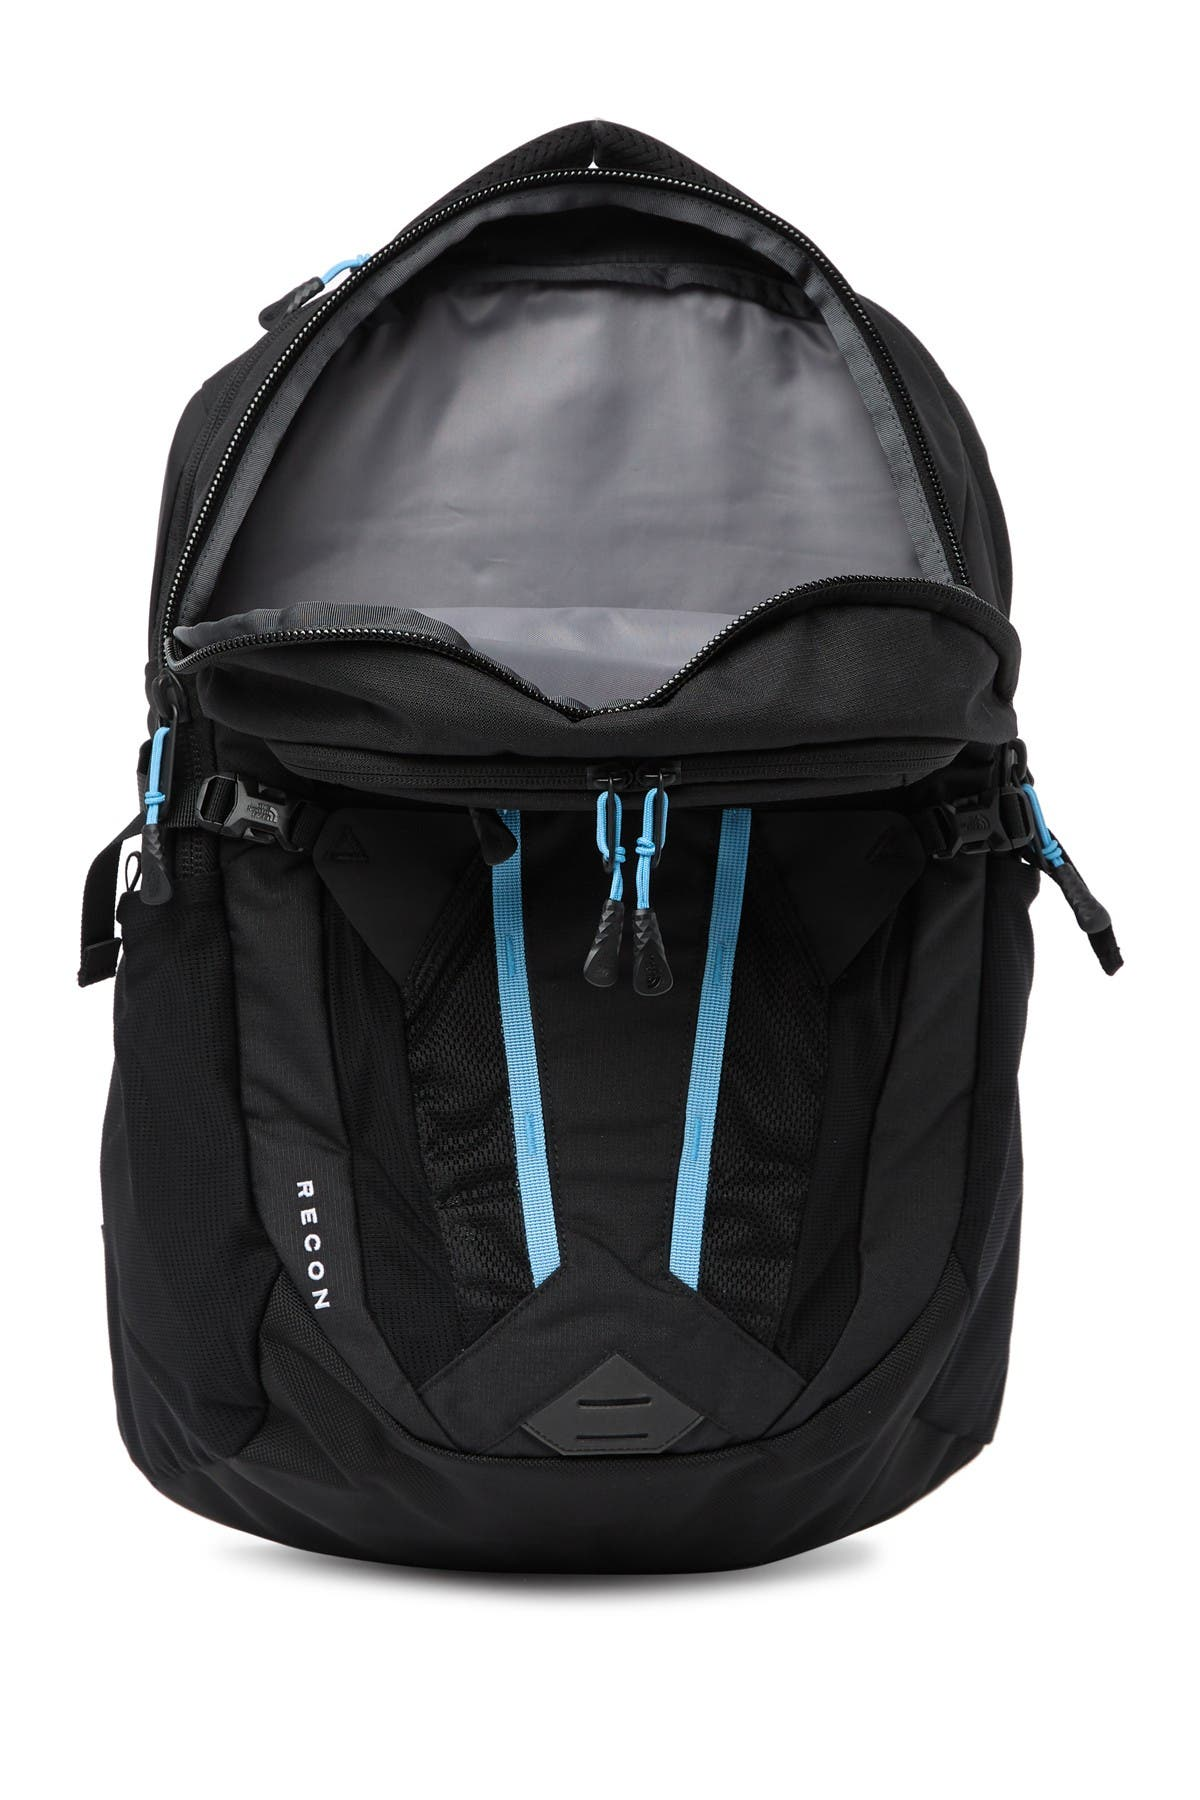 Image of The North Face Recon Backpack